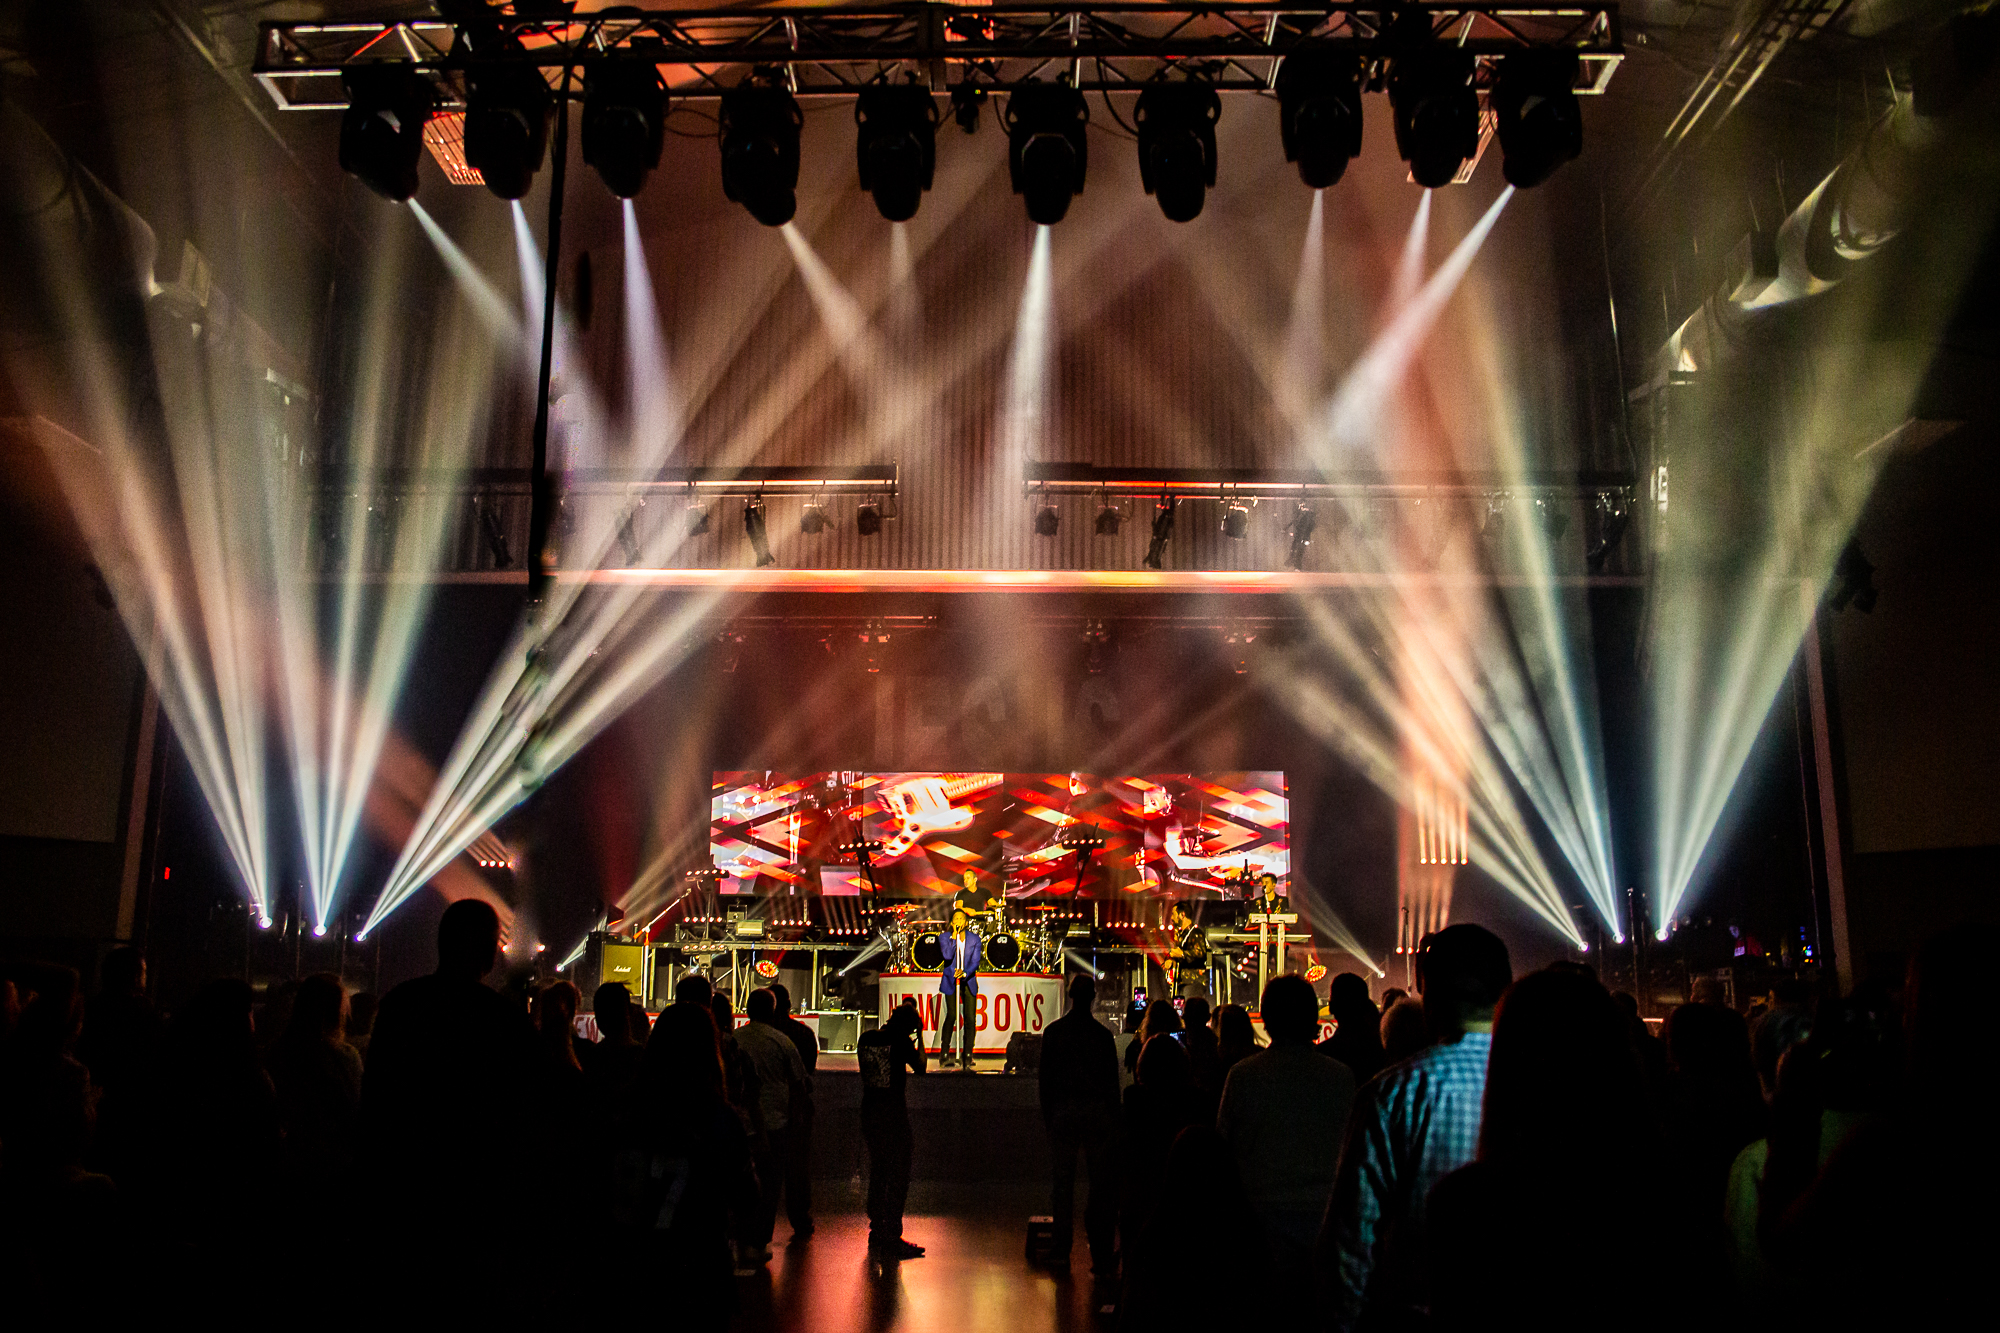 Newsboys United 2020 Greatness of Our God Tour with Mandisa and Adam Agee 3-1-20 [Recap]